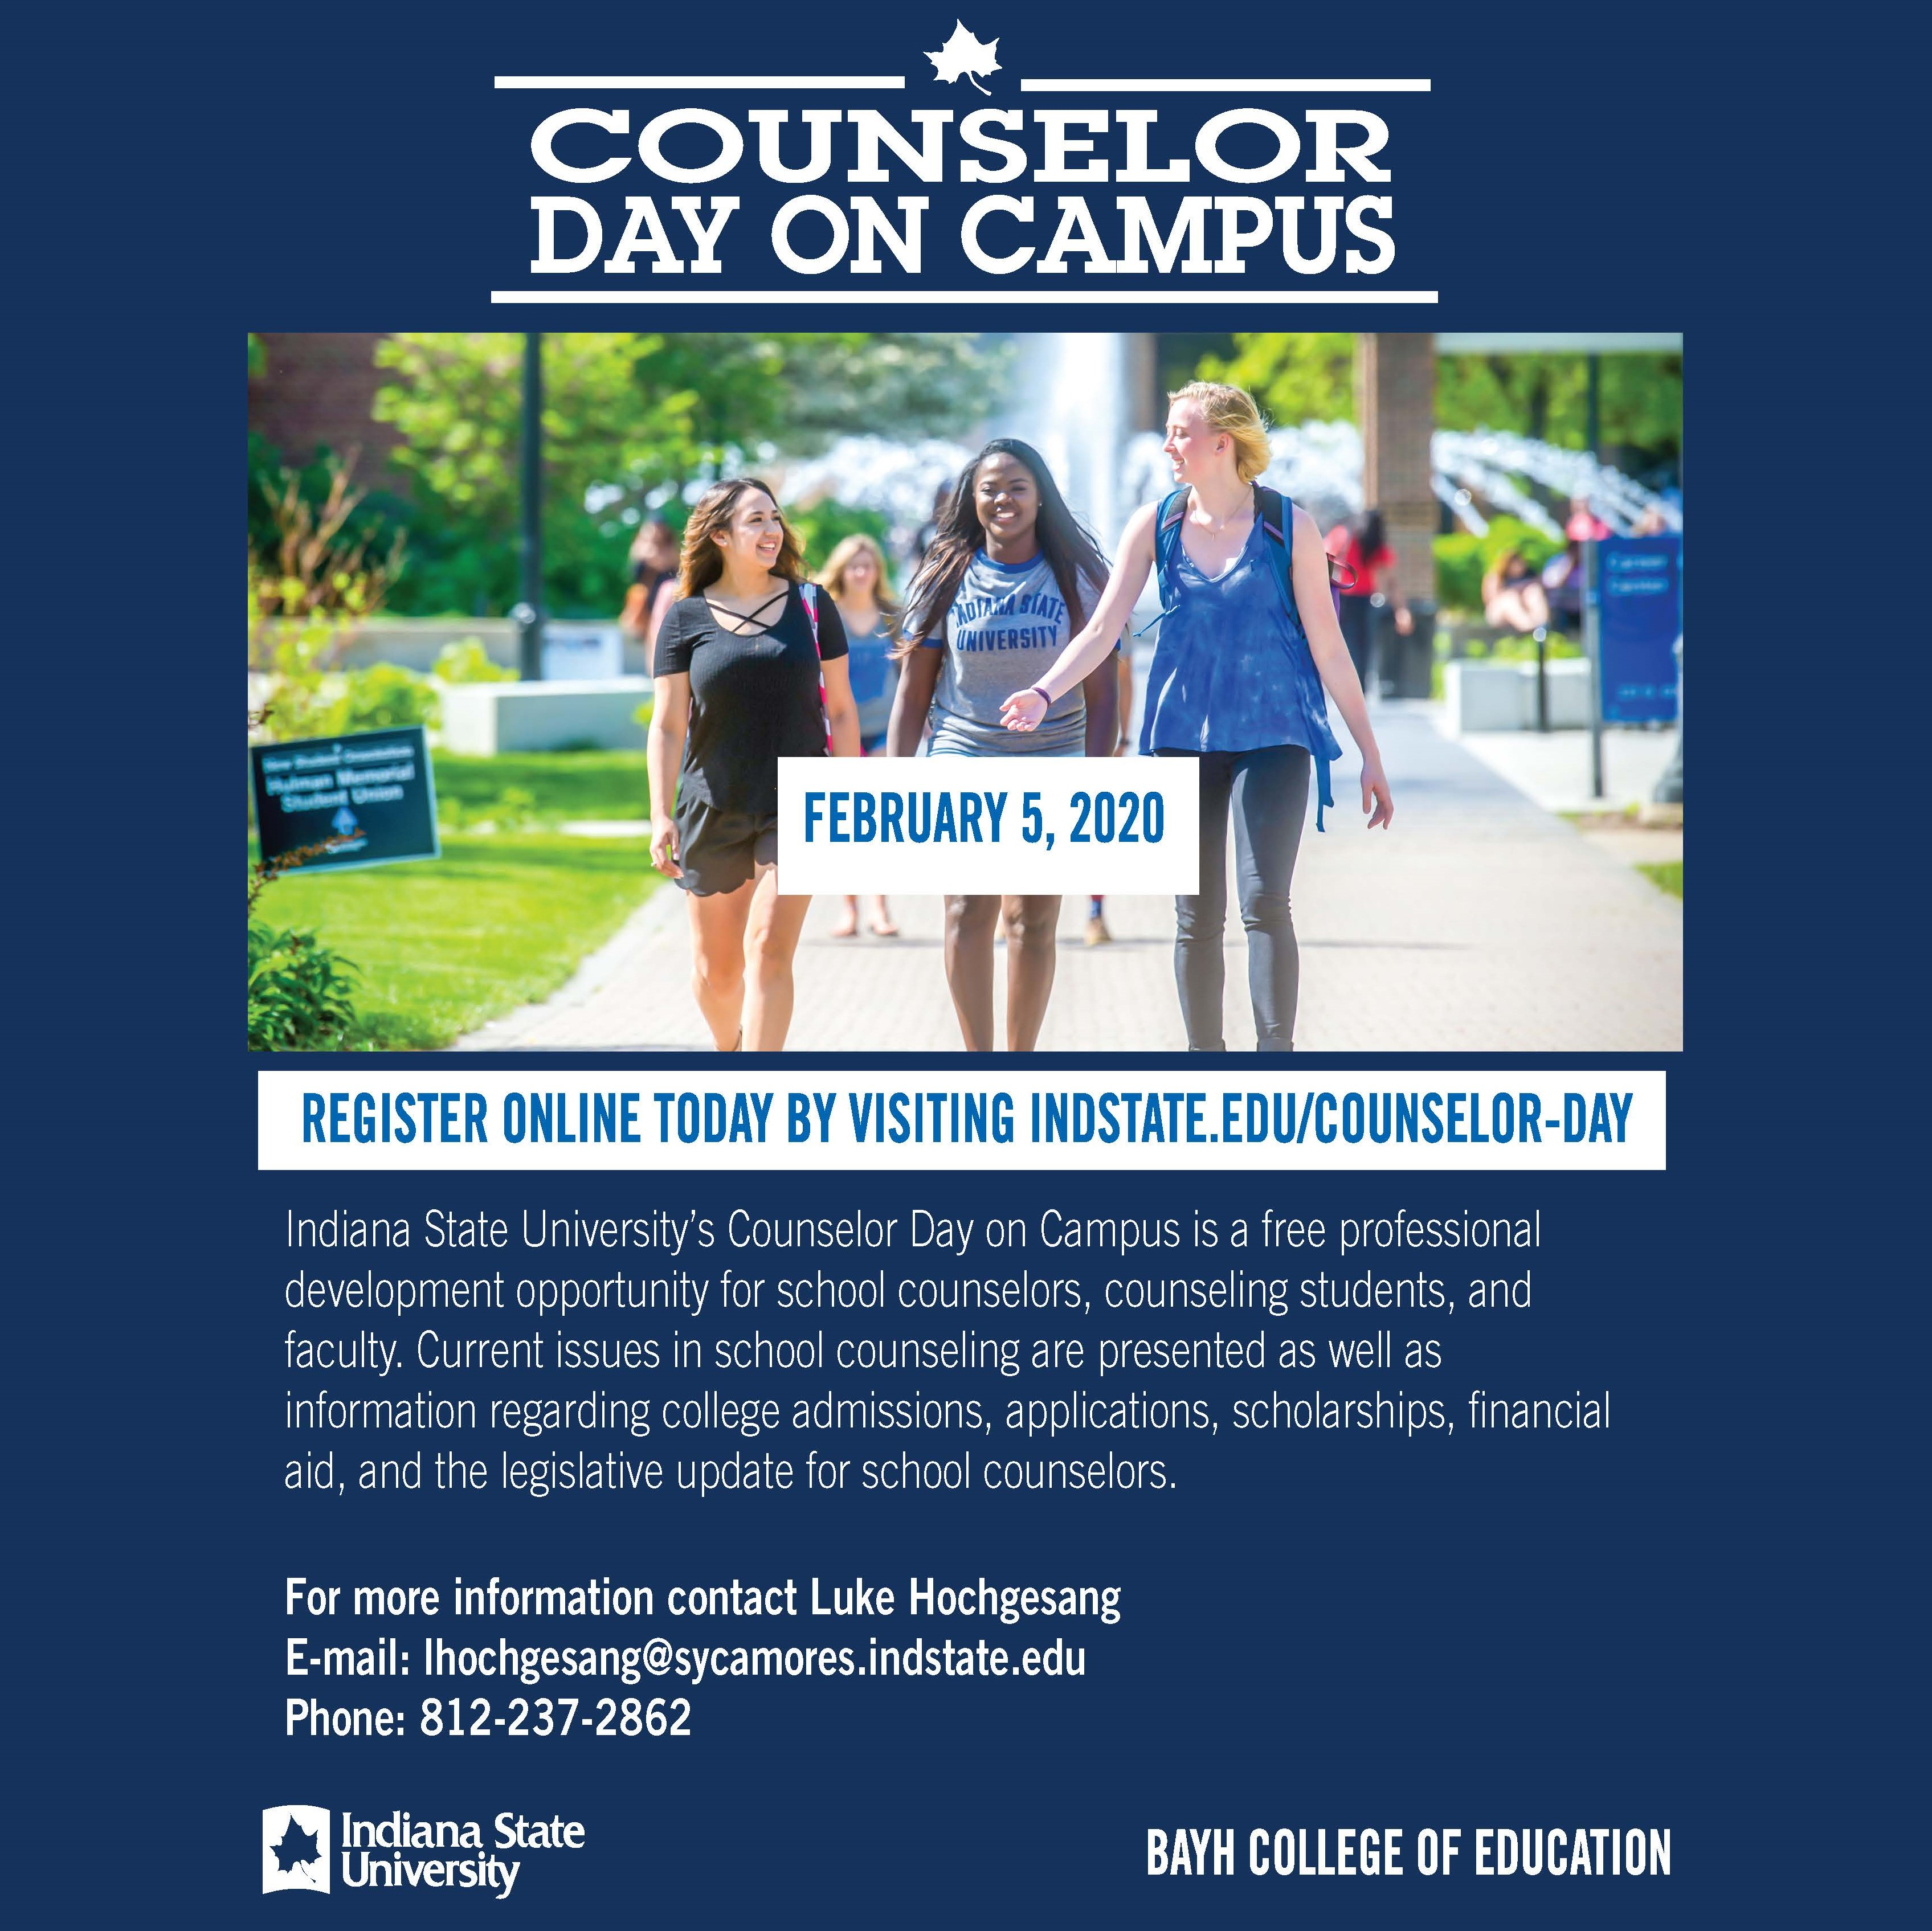 Counselor Day on Campus 2020 Registration